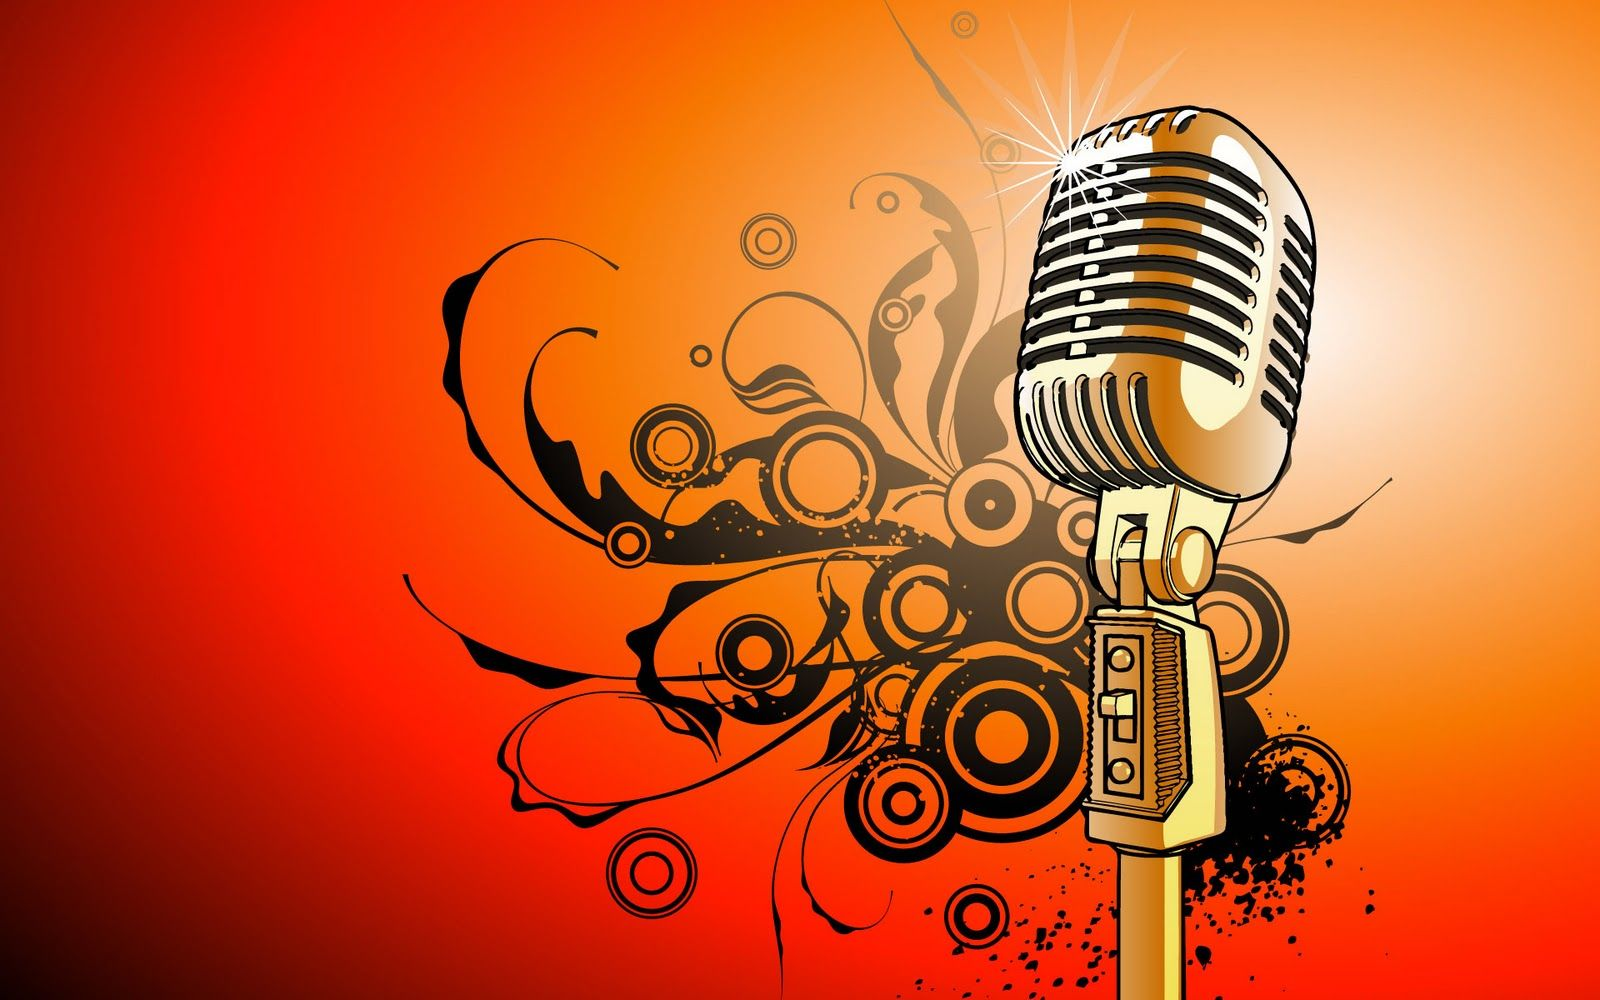 Download Free Wallpapers Backgrounds Colorfull Mic Wallpapers Music Music Wallpaper Art Music Wallpaper Pictures